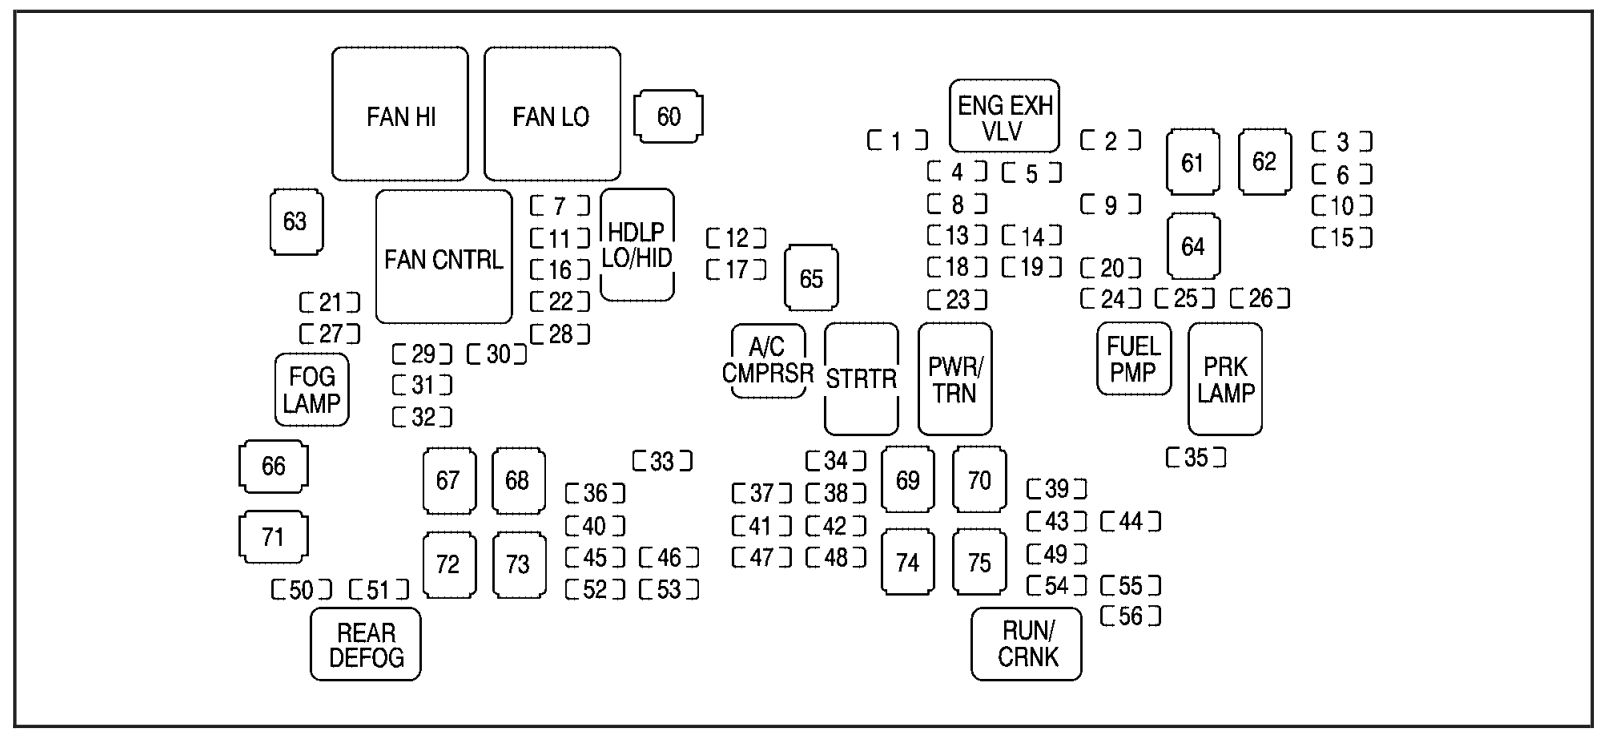 hight resolution of 2007 chevrolet avalanche fuse diagram wiring diagrams value instrument panel fuse block diagram for the 2008 chevrolet avalanche